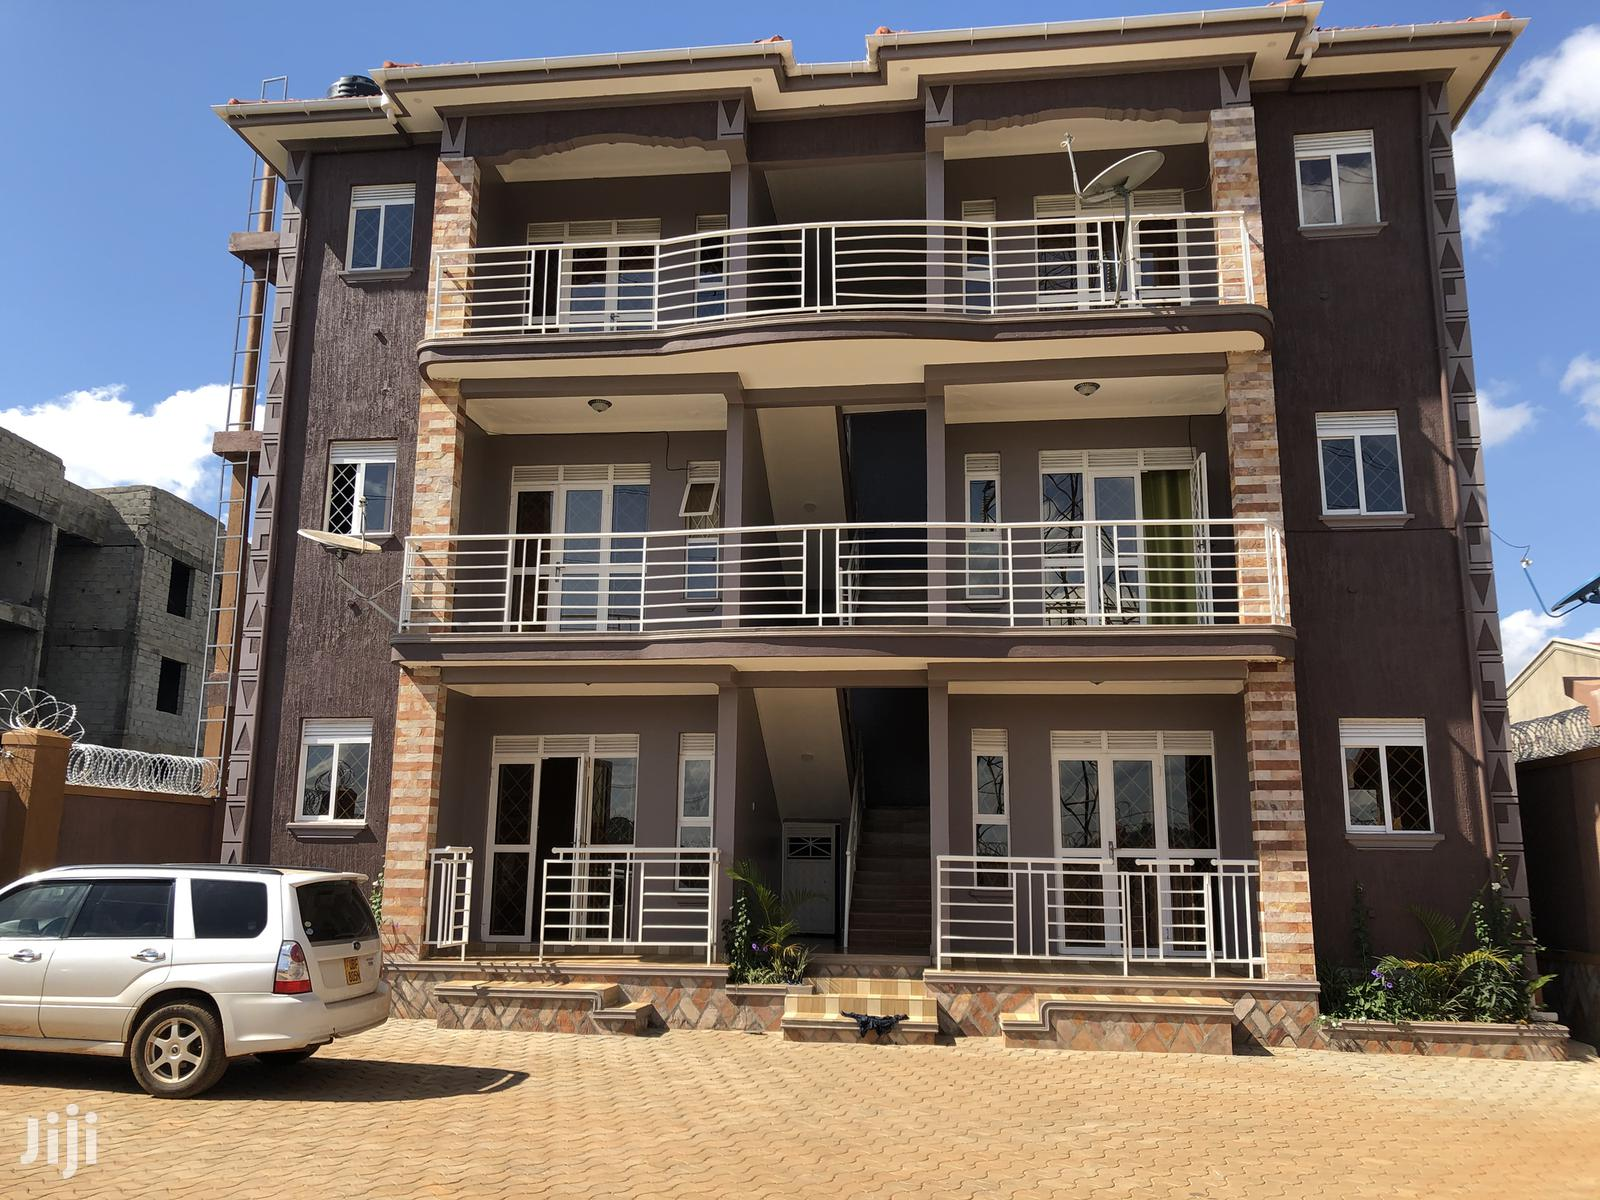 Kyanja Apartments on Sell